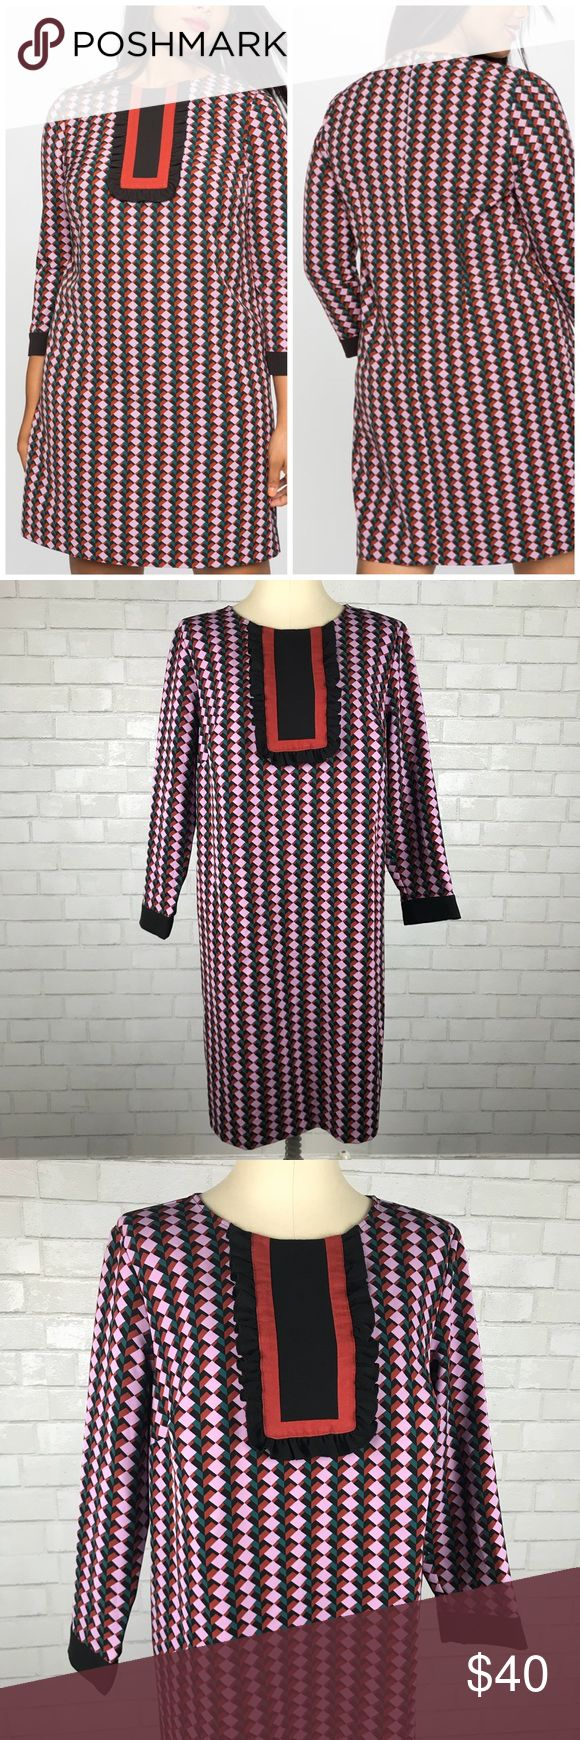 """Eloquii Printed Bib Long Sleeve Dress Excellent condition Eloquii Printed Bib Long Sleeve Dress. Size 16. Has a back zipper and ruffle trimmed bib. Thick poly/spandex skims over your curves while holding it's shape. Bust 48""""-52"""", Waist 47""""-50"""", hips 52""""-56"""", length 39"""", sleeve length 22.5"""". Mauve, green, brown and black. No trades, offers welcome. Eloquii Dresses"""